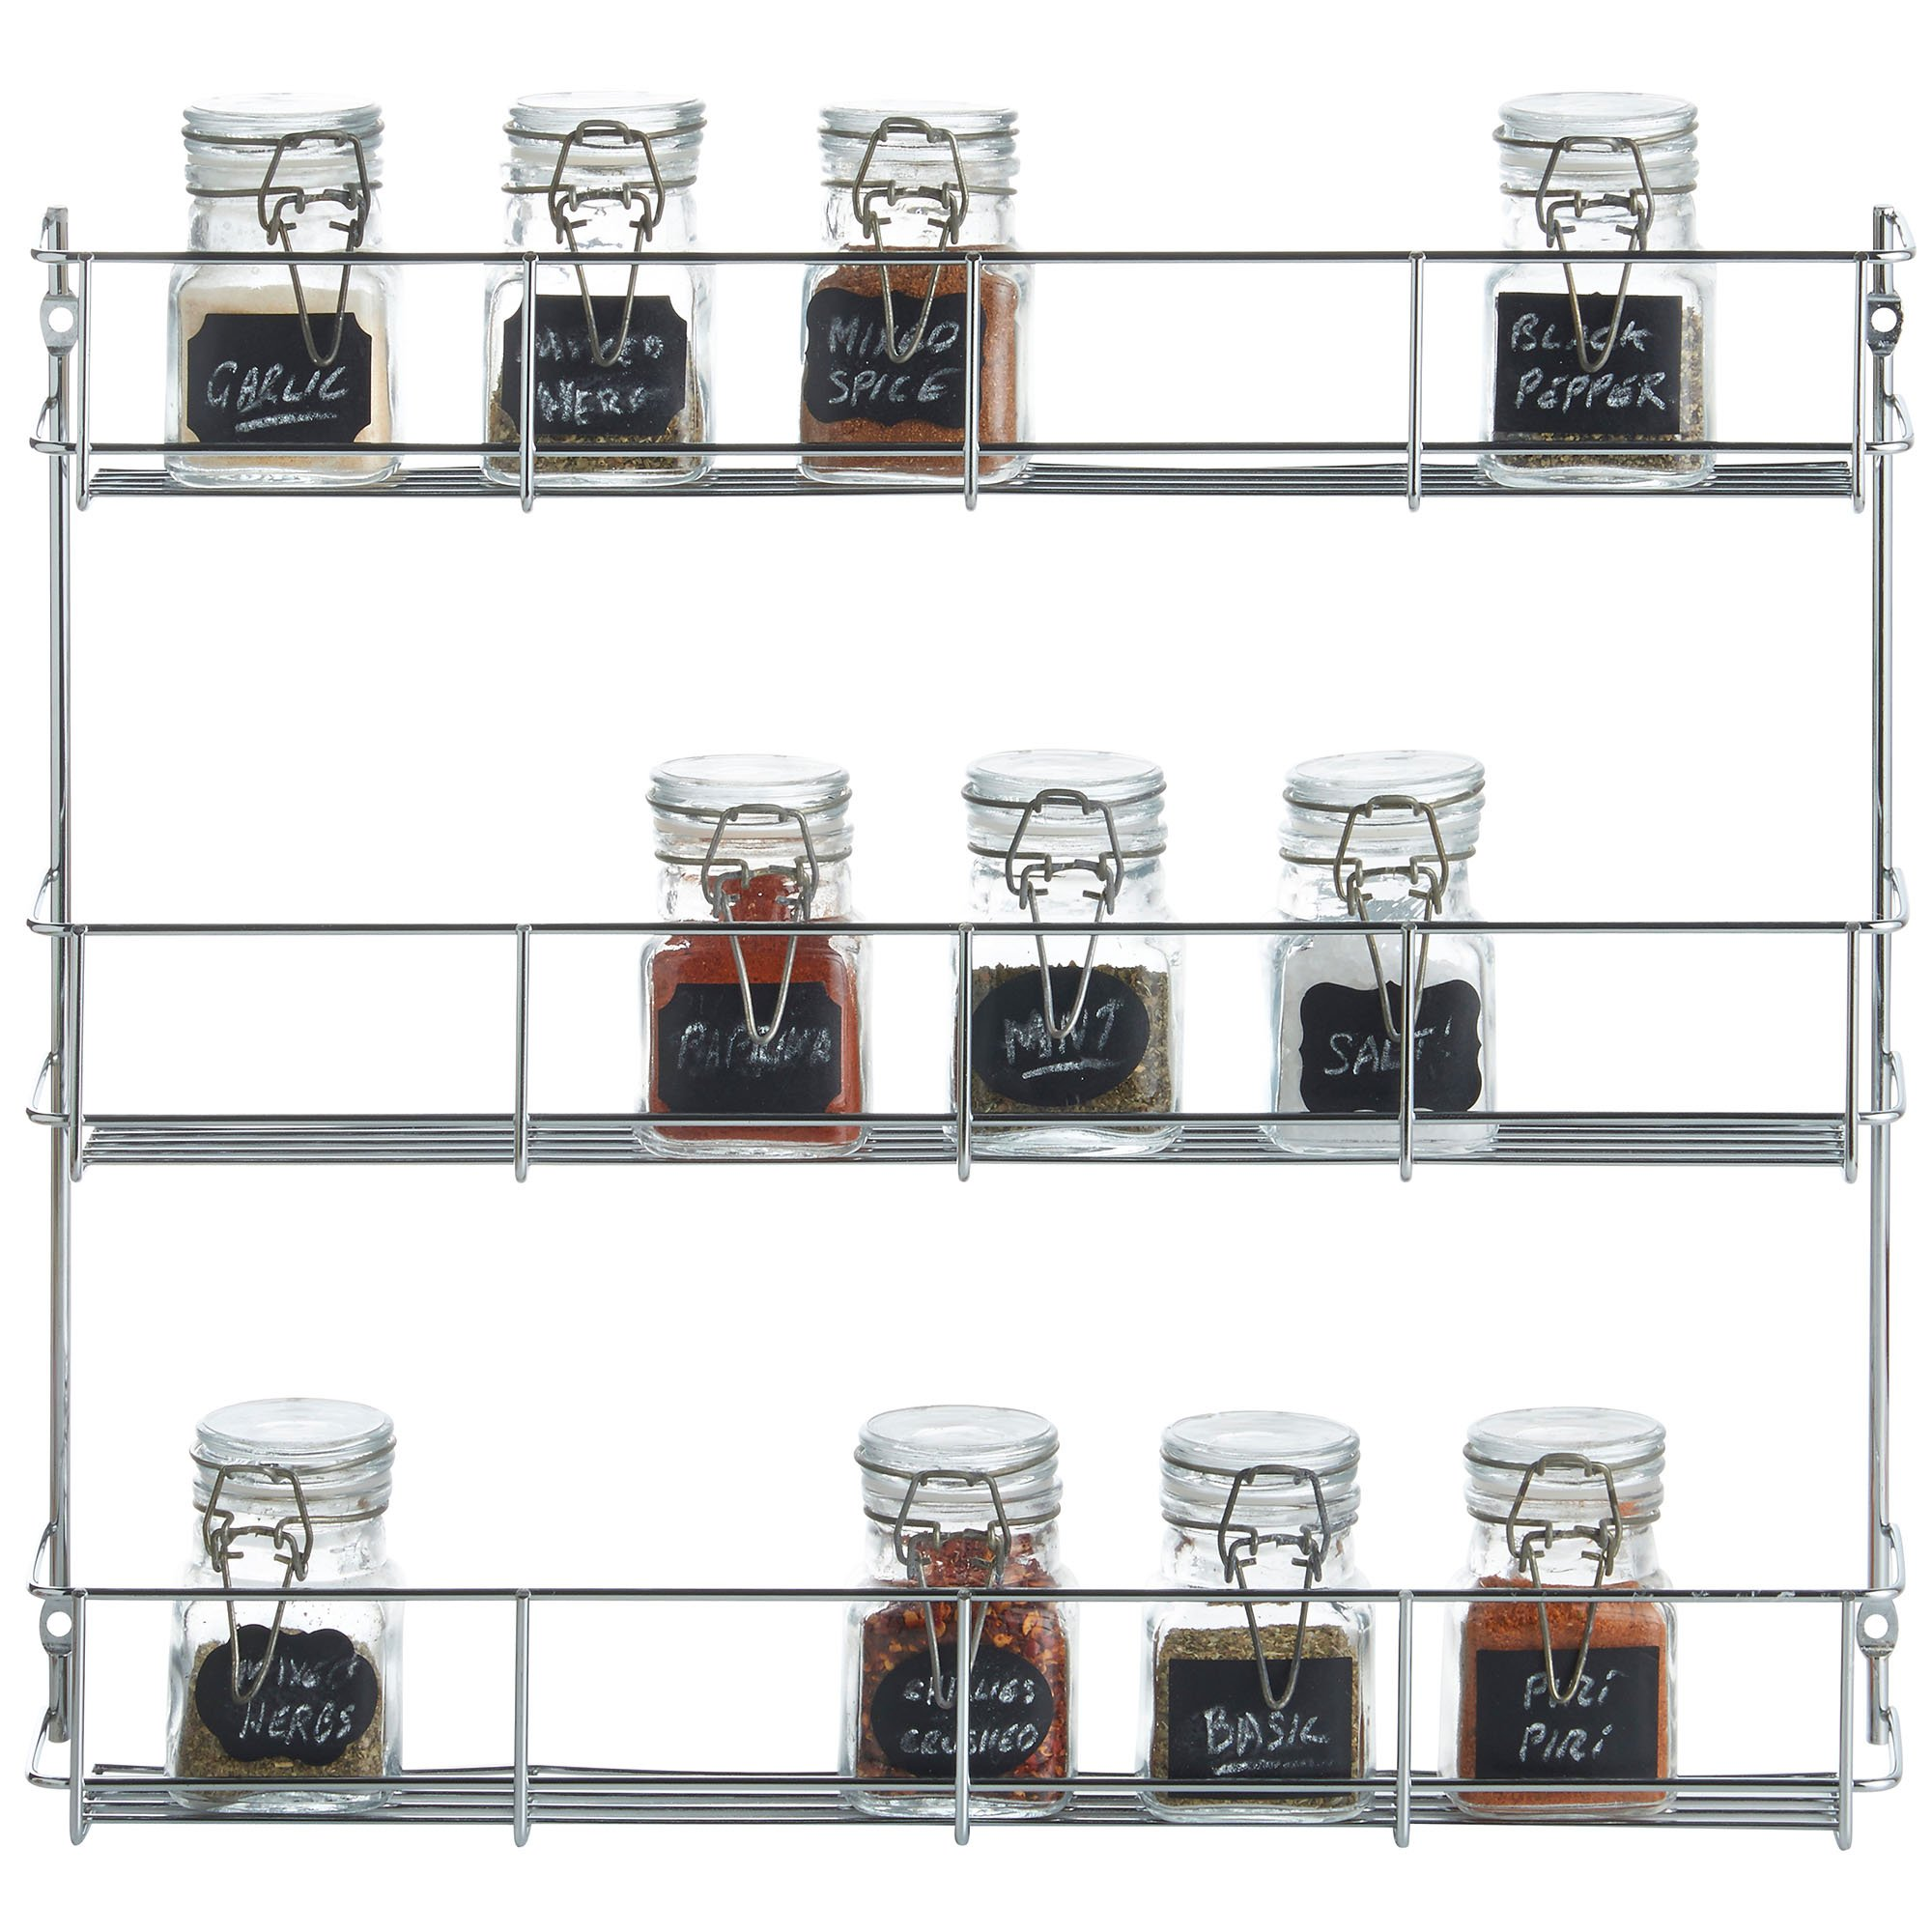 VonShef 3 Tier Spice Rack Chrome Plated (Easy Fix) For Herbs and Spices Suitable for Wall Mount or Inside Cupboard